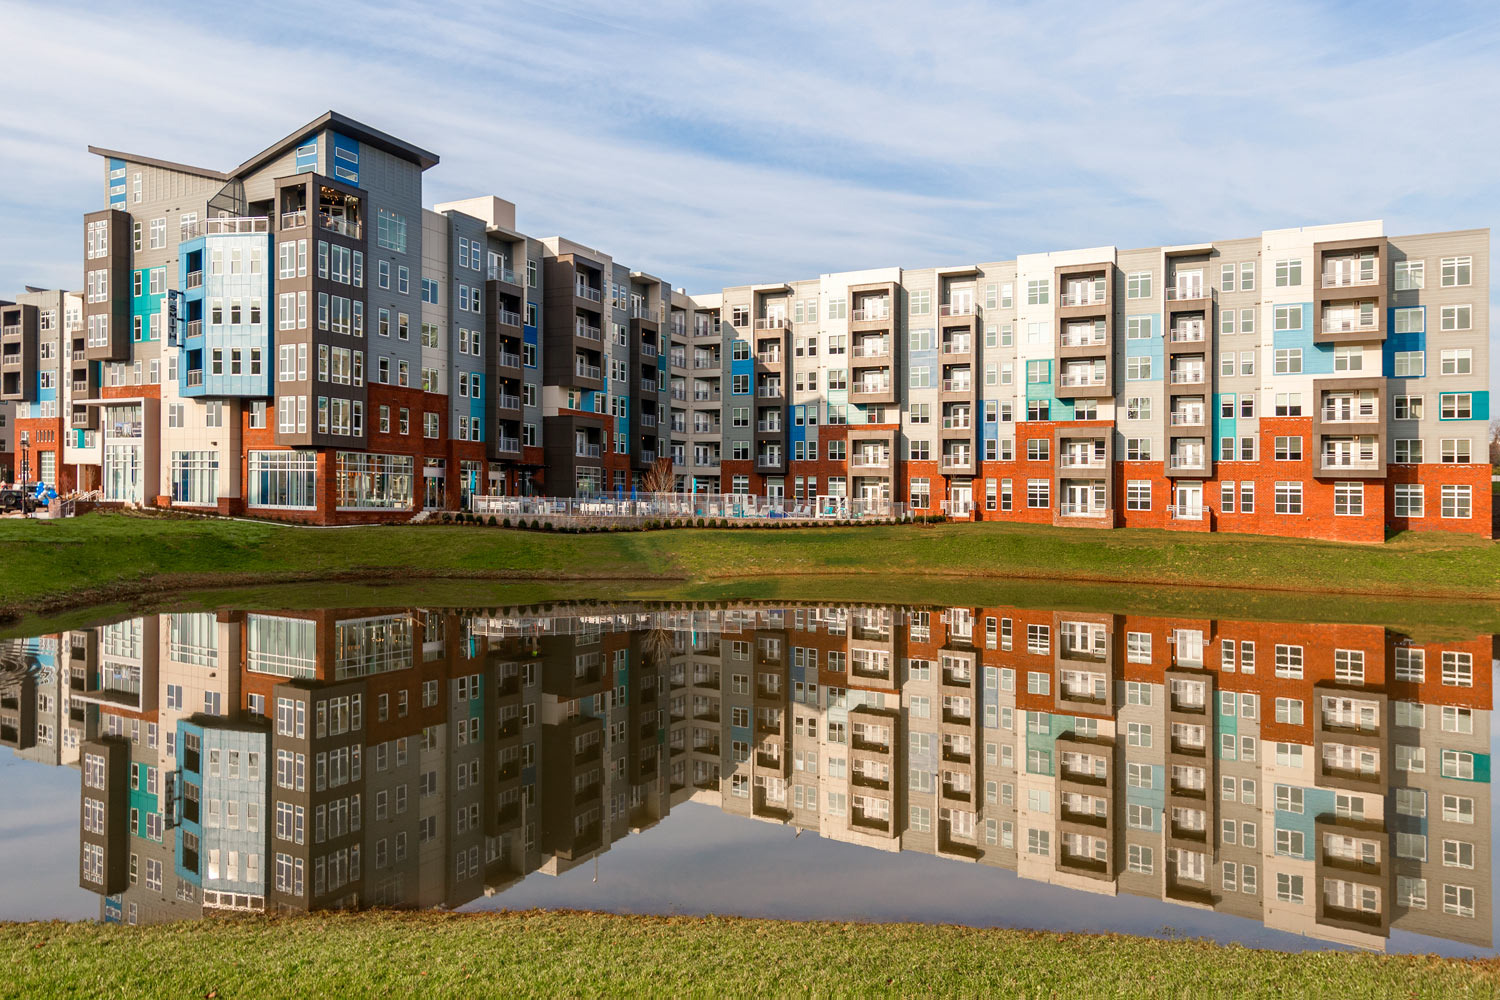 CBG builds The Smith, a Six-Story, 320-Unit Luxury Apartment Community with Amenities in King of Prussia, PA